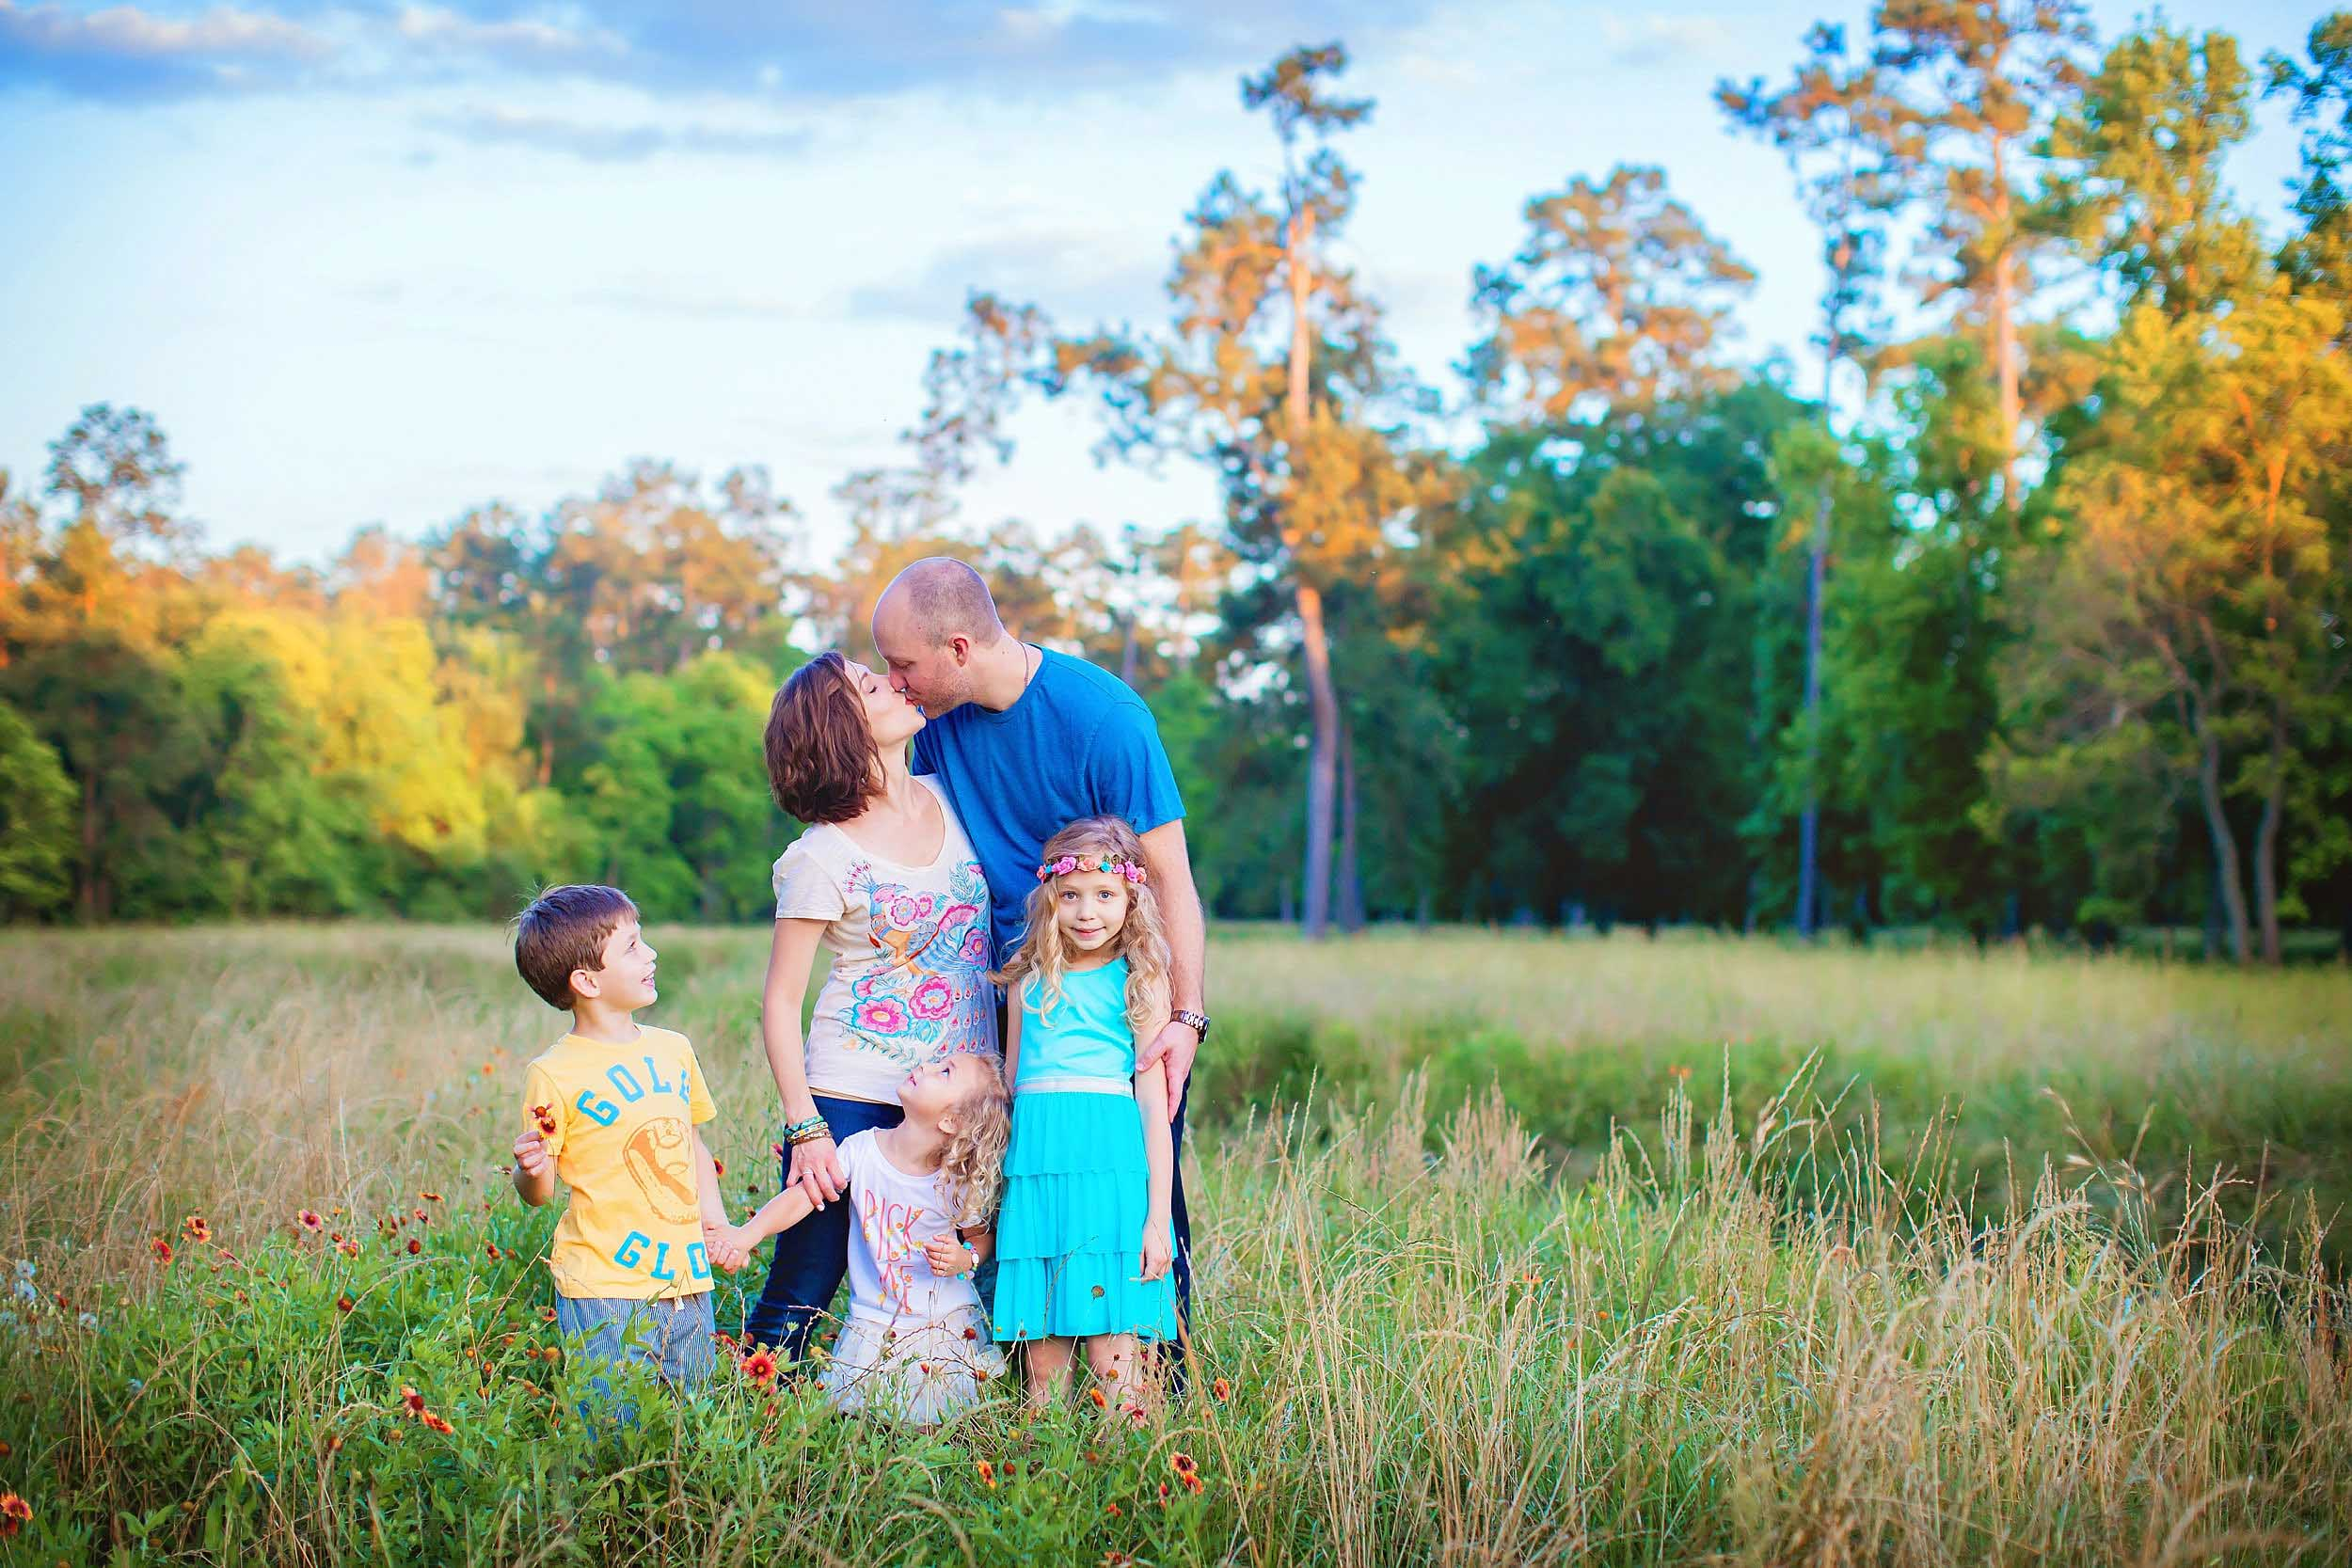 Family portrait with mom and dad kissing in wildflowers in The Woodlands, Texas.